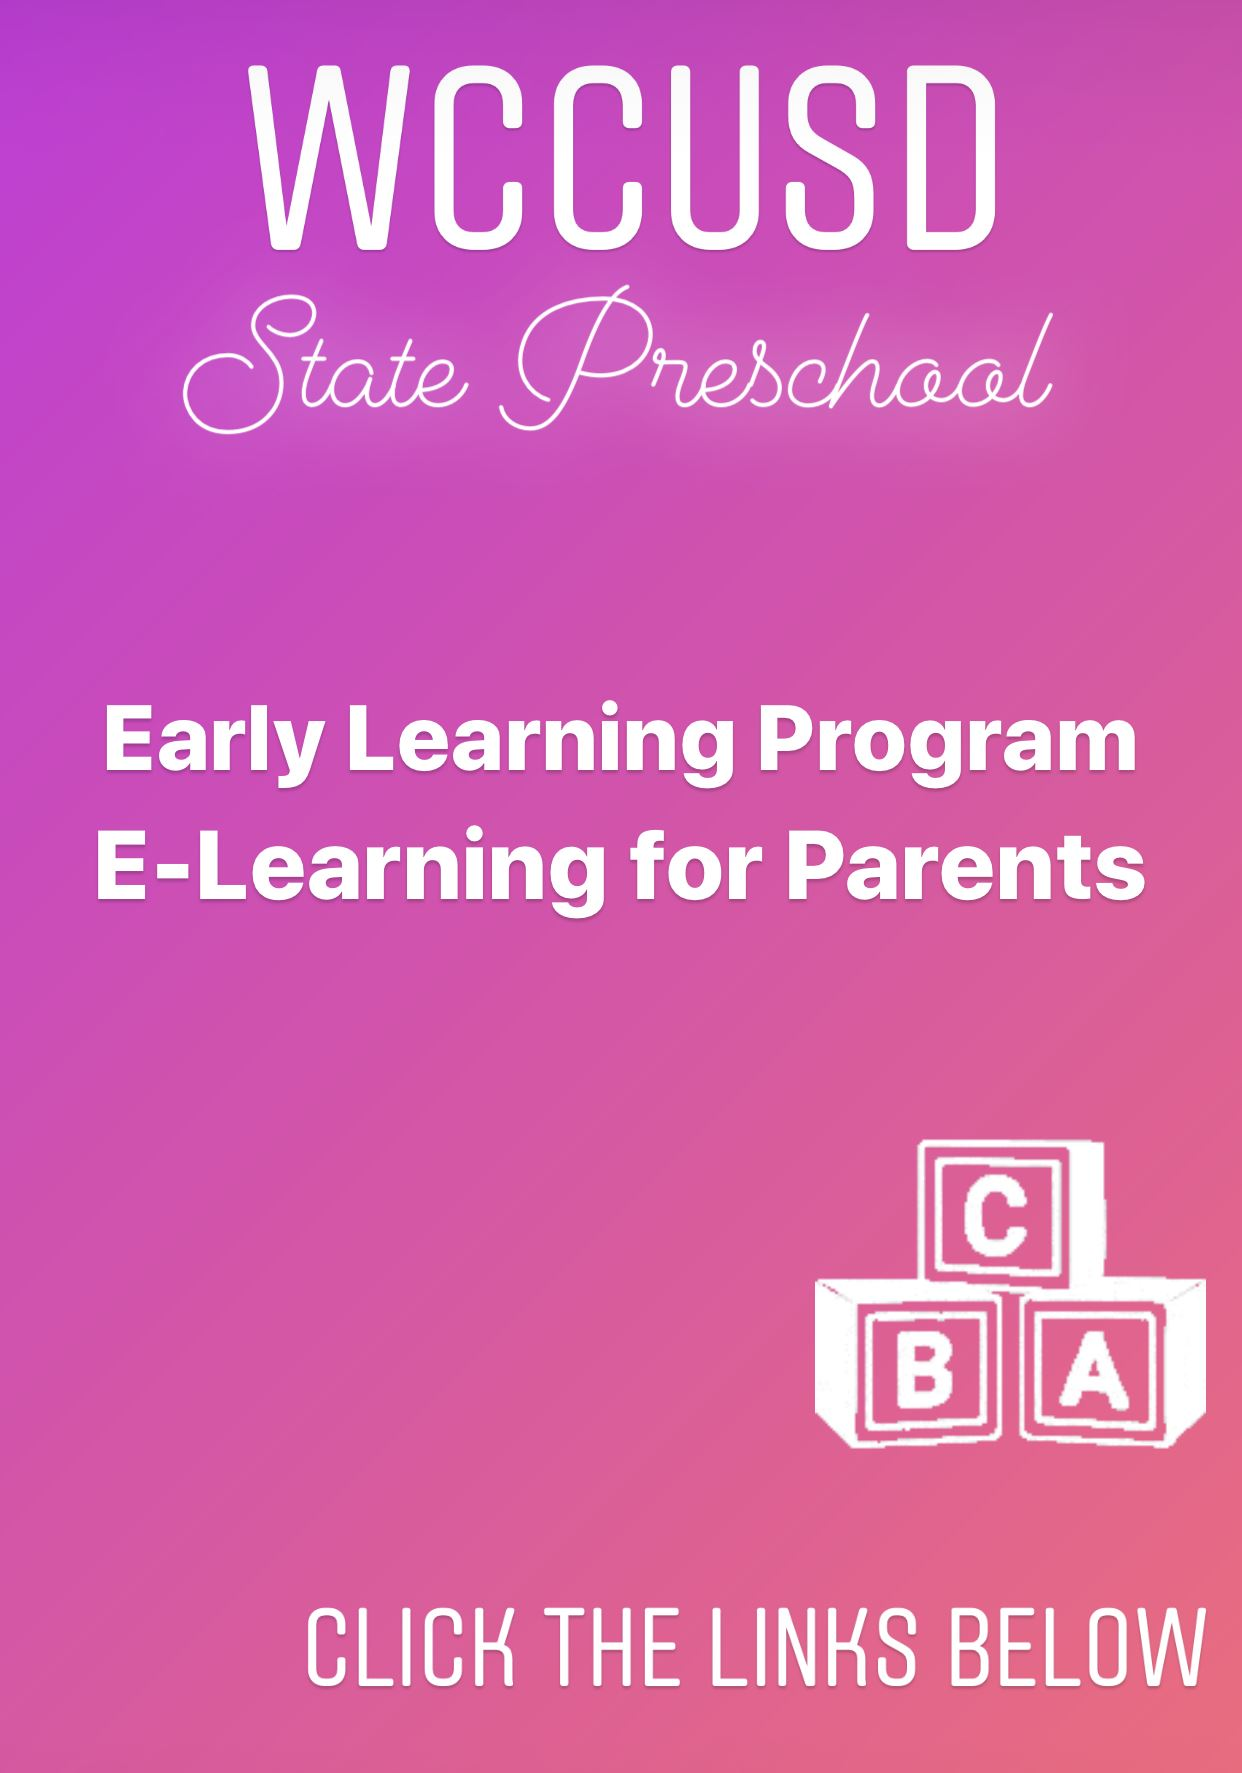 E-Learning Videos for Parents